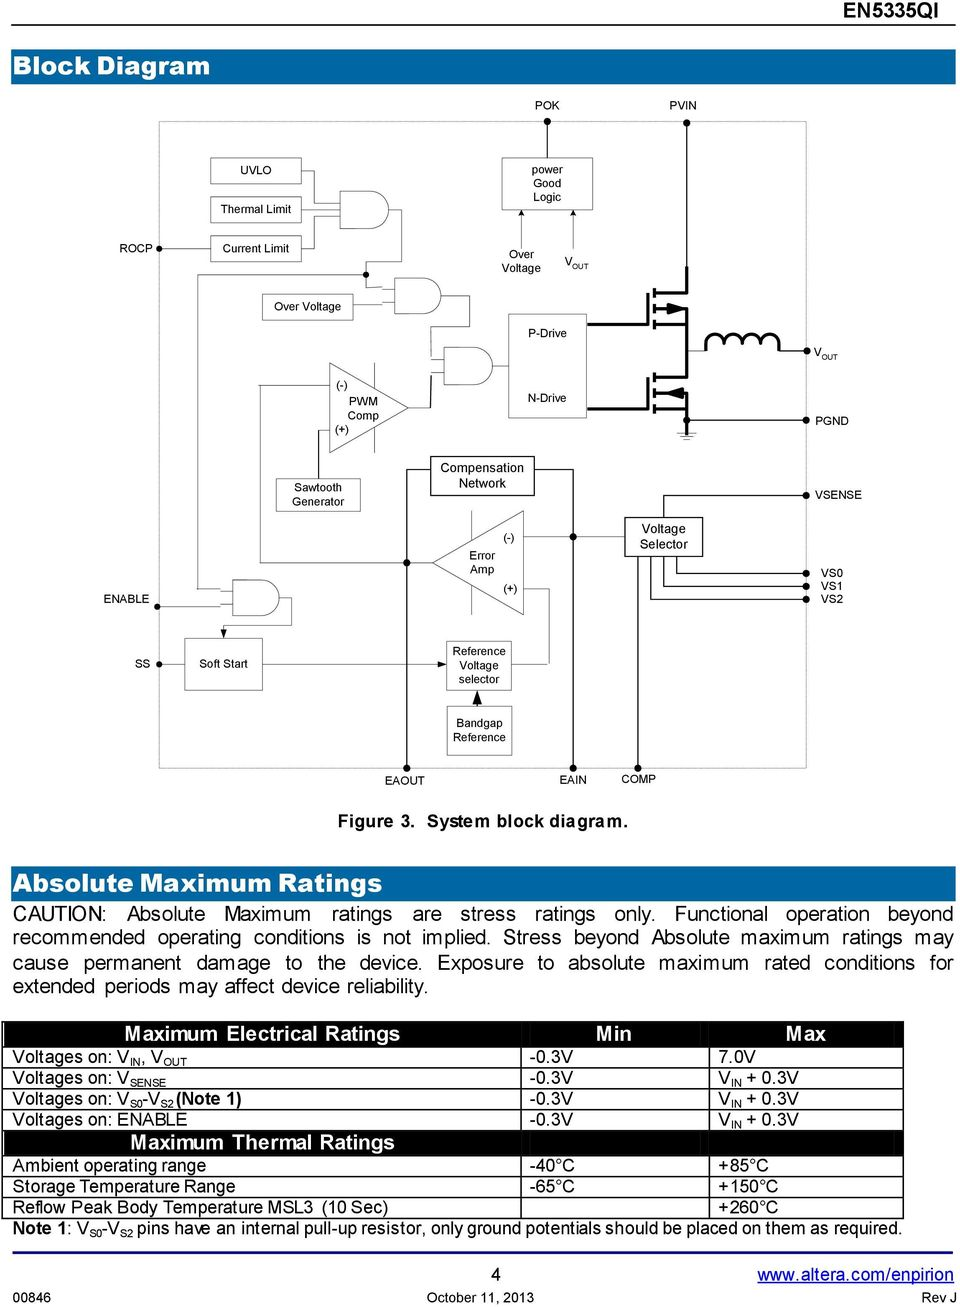 Enpirion Power Datasheet En5335qi 3a Powersoc Voltage Mode Regulated Supply Circuit Diagram Composed Of Ca723c Absolute Maximum Ratings Caution Are Stress Only Functional Operation Beyond